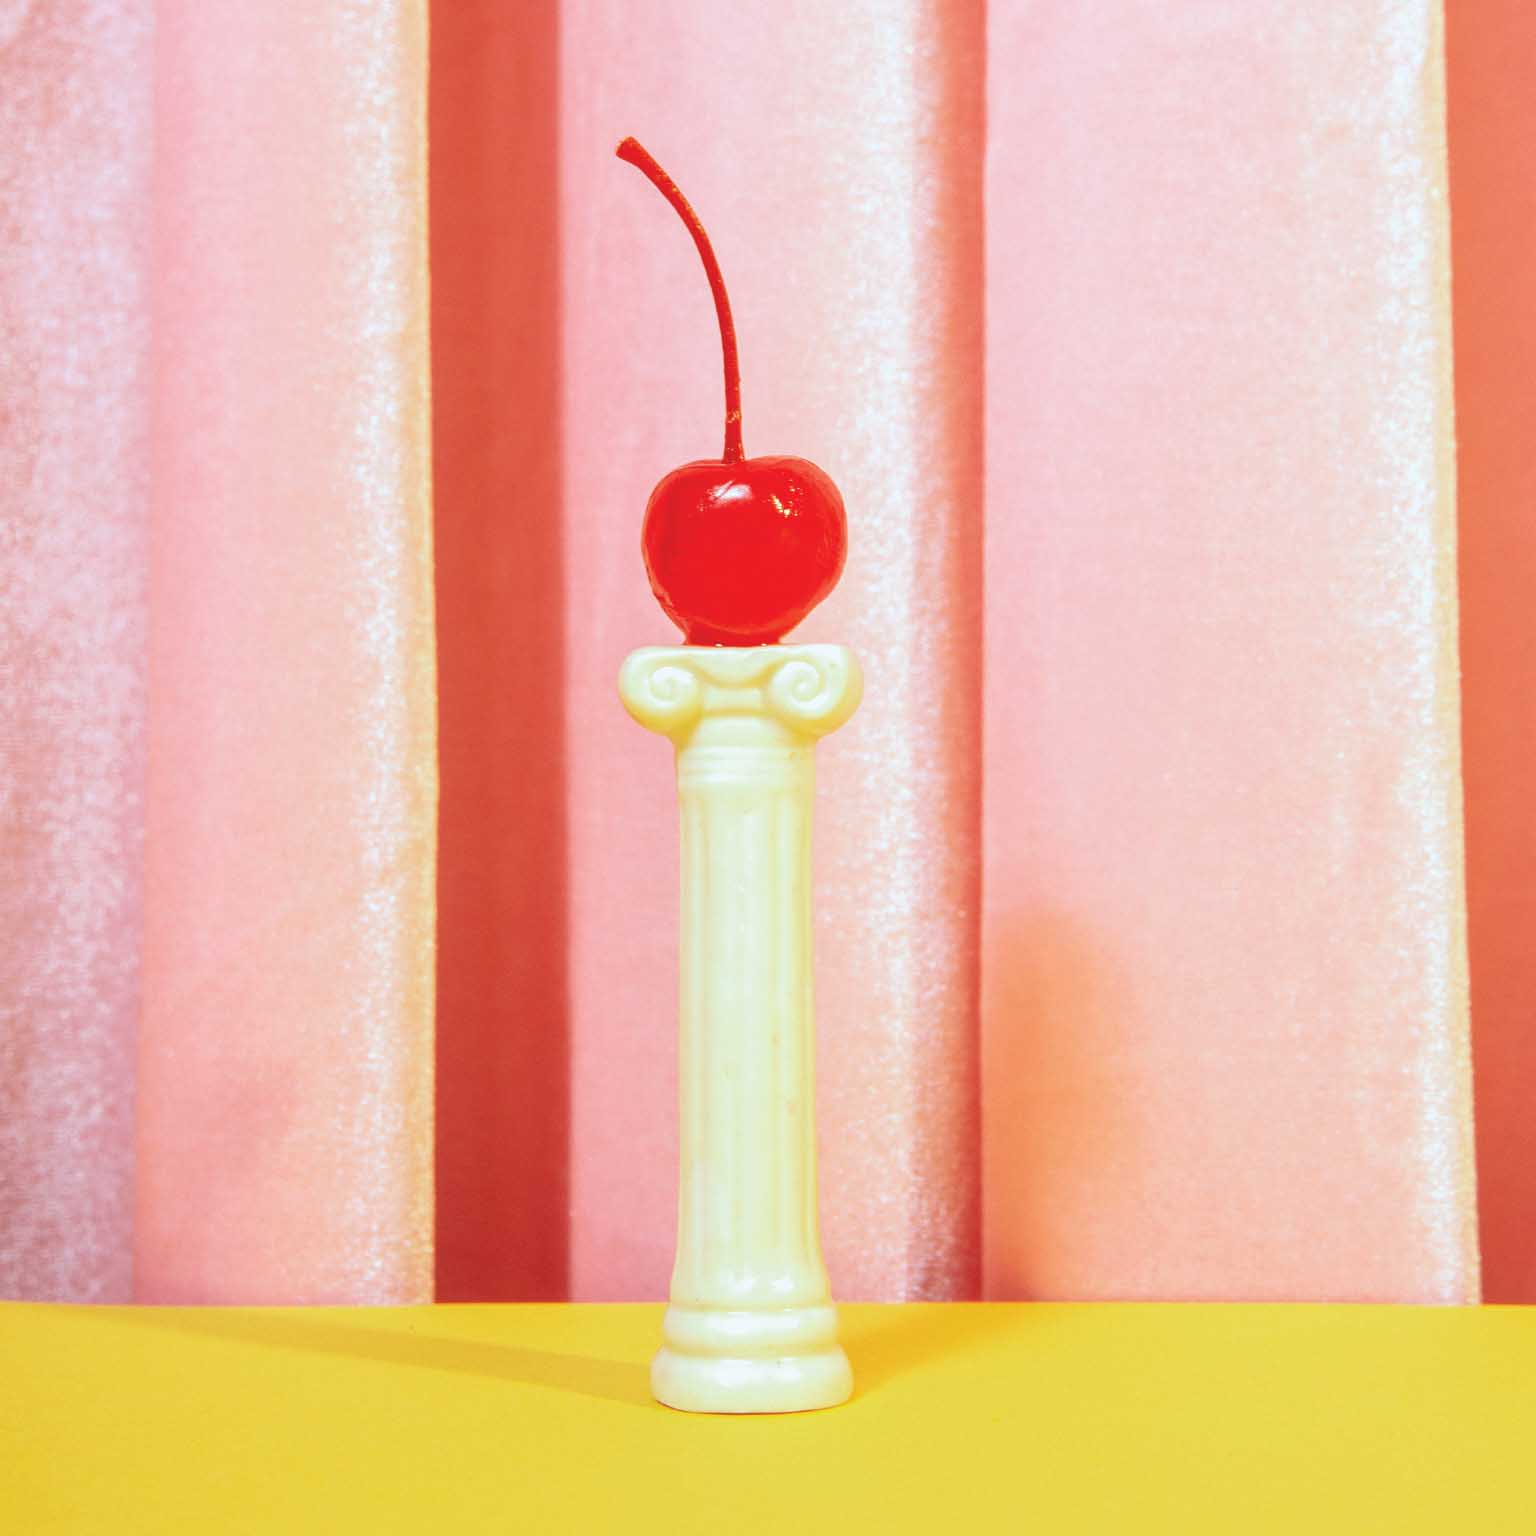 carnal knowledge cherry pedestal